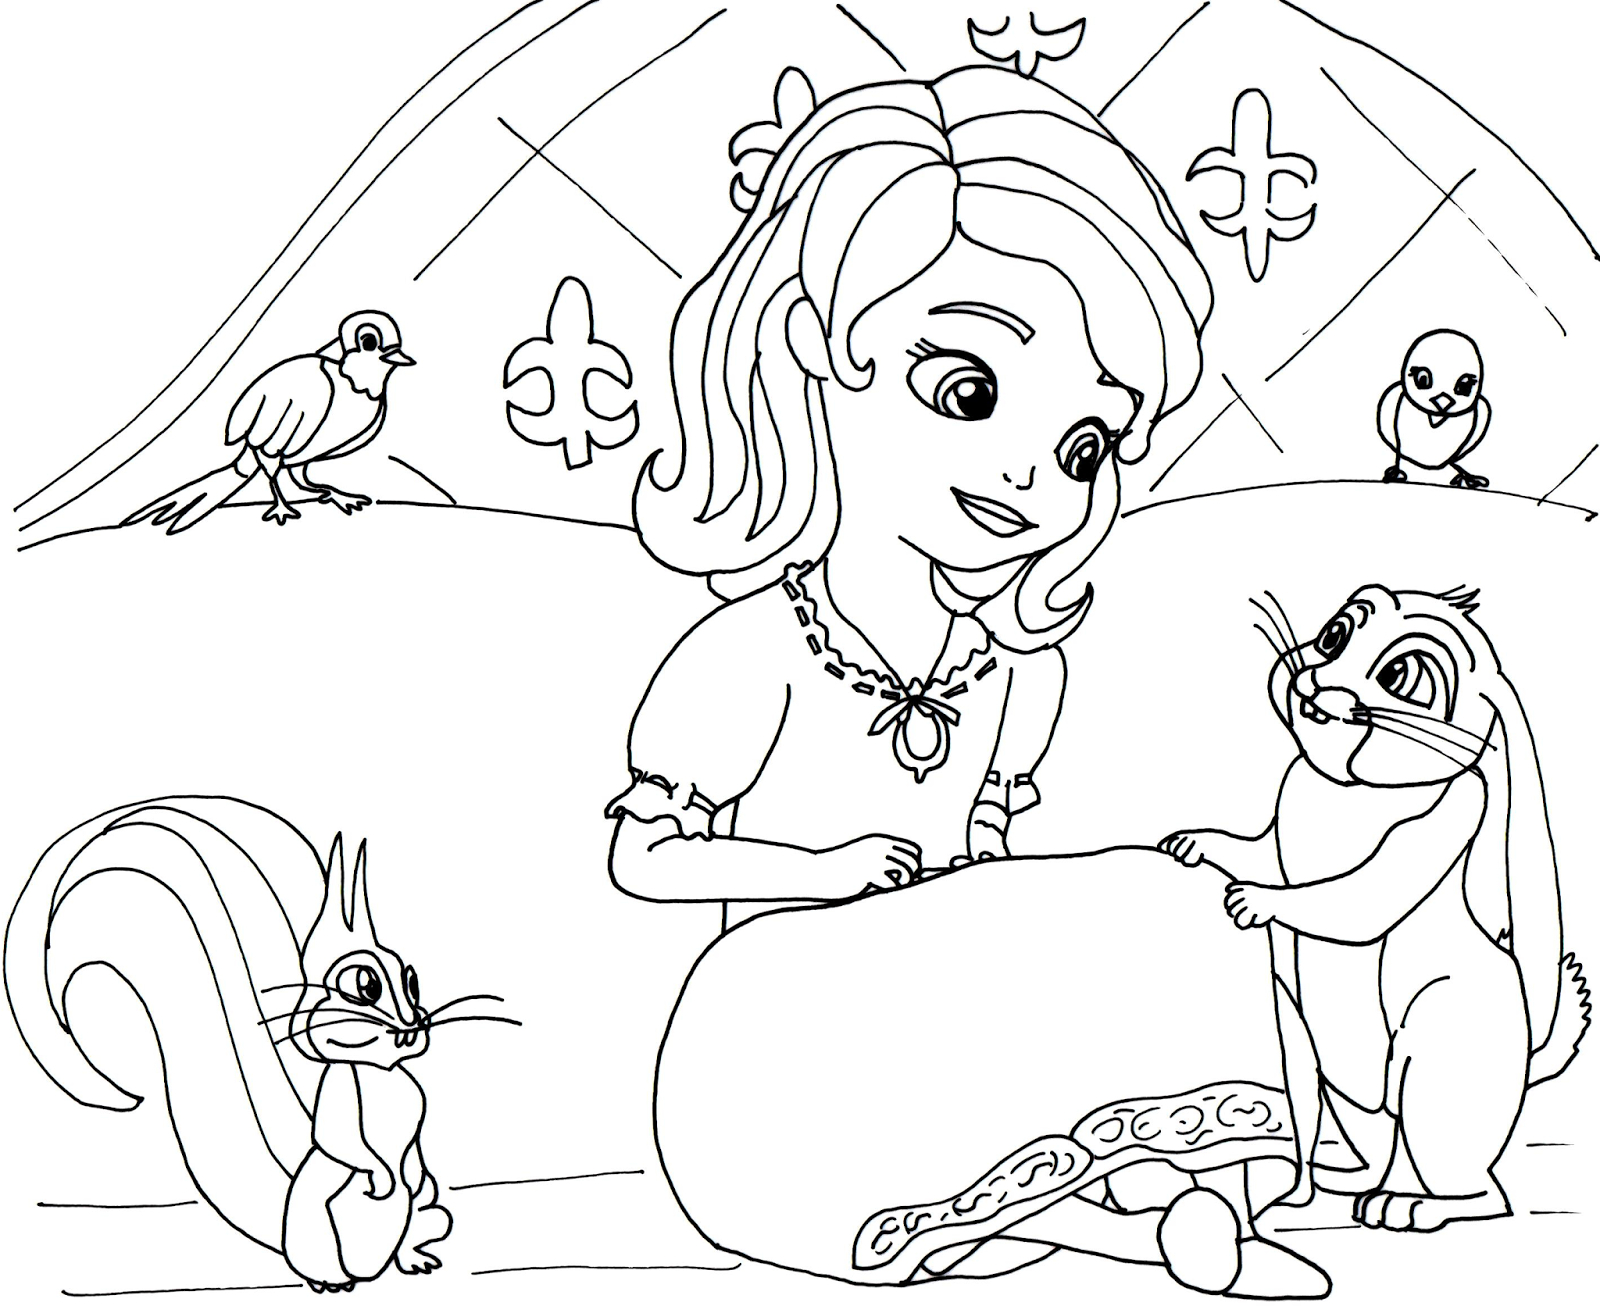 Sofia The First Coloring Page Sofia The First Printables Wwwilleurimage